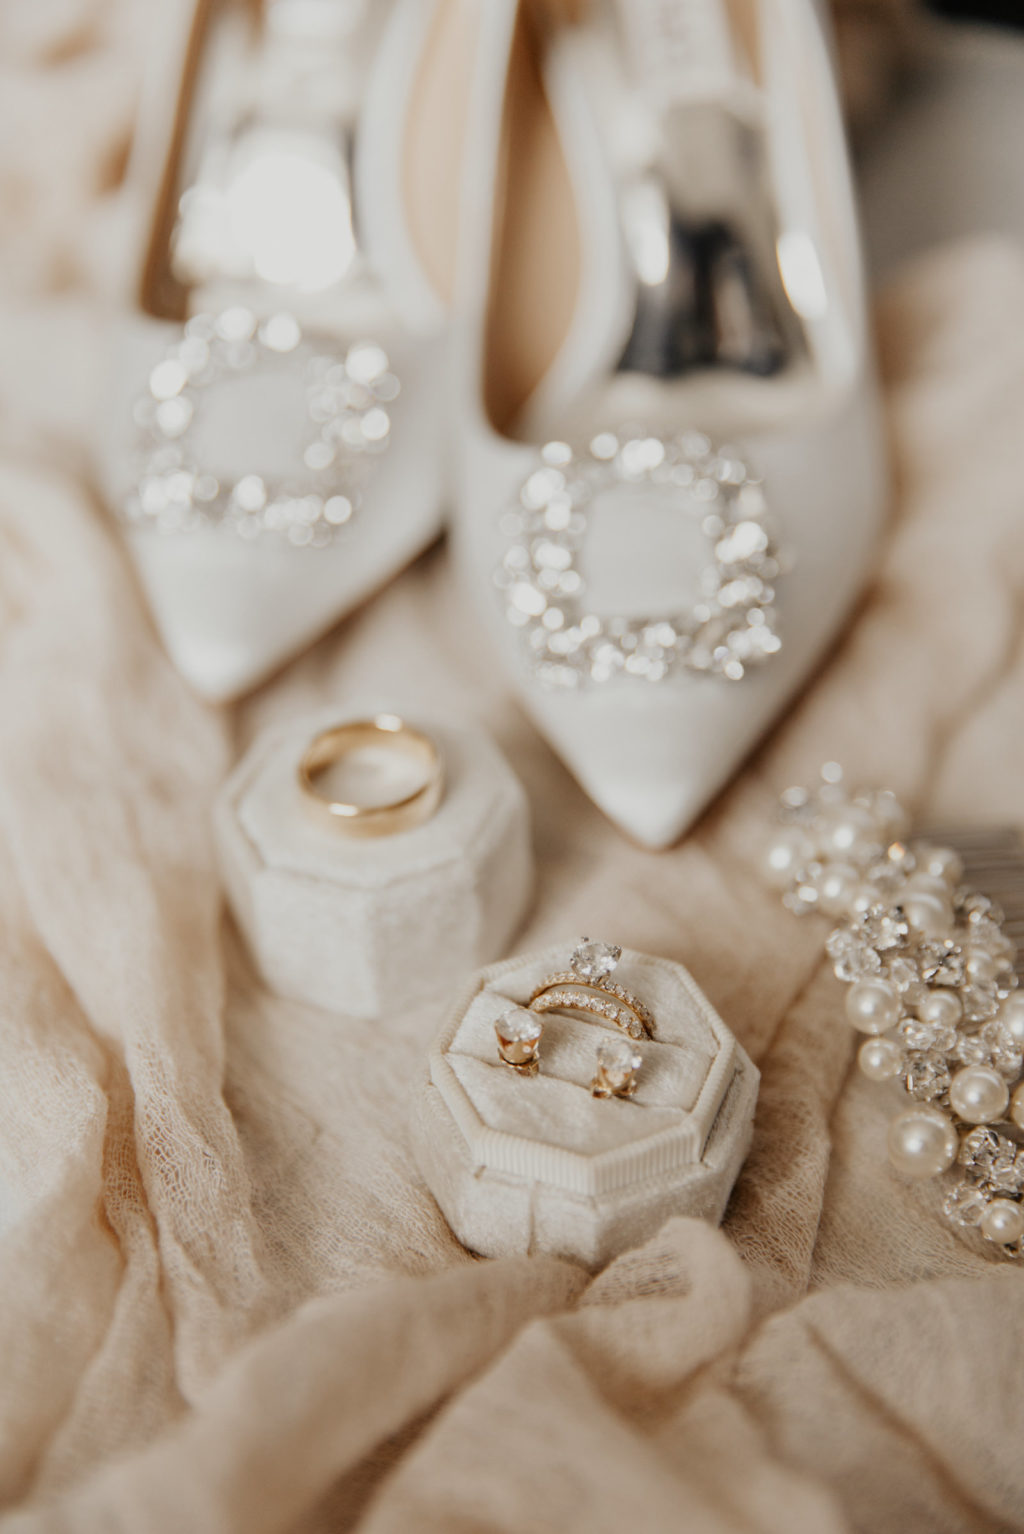 Classic Florida Wedding Day Bridal Details, Octagon Velvet Ring Box Yellow with Gold Diamond Engagement Ring and Earring Studs, Badgley Mischka White Wedding Shoes, Pearl Hair Pendant